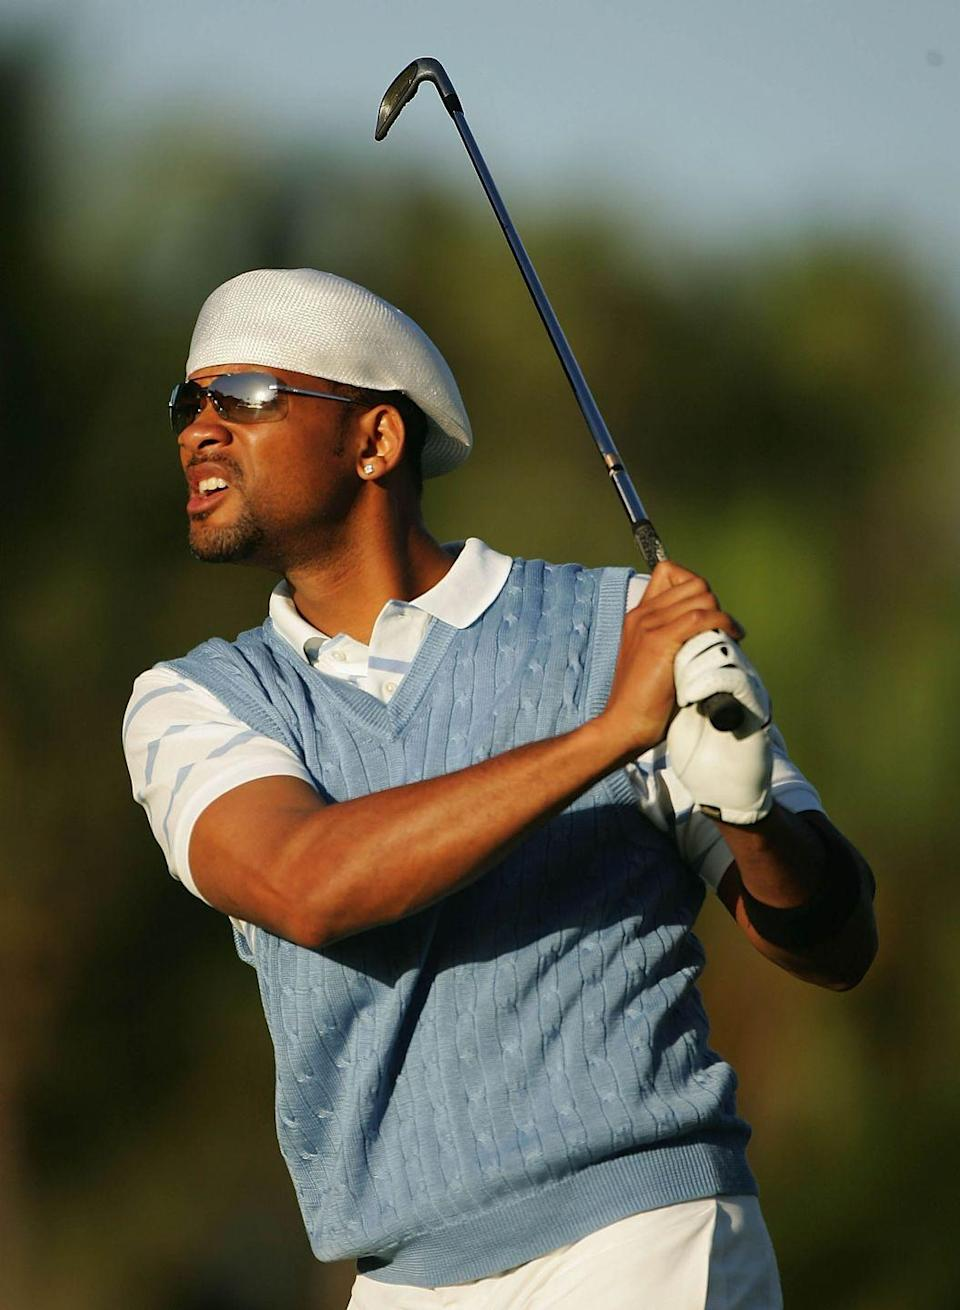 <p>Will Smith watches a shot during the Pro-Am at the Sony Open at the Waialae Country Club on December 12, 2005 in Honolulu, Hawaii.</p>